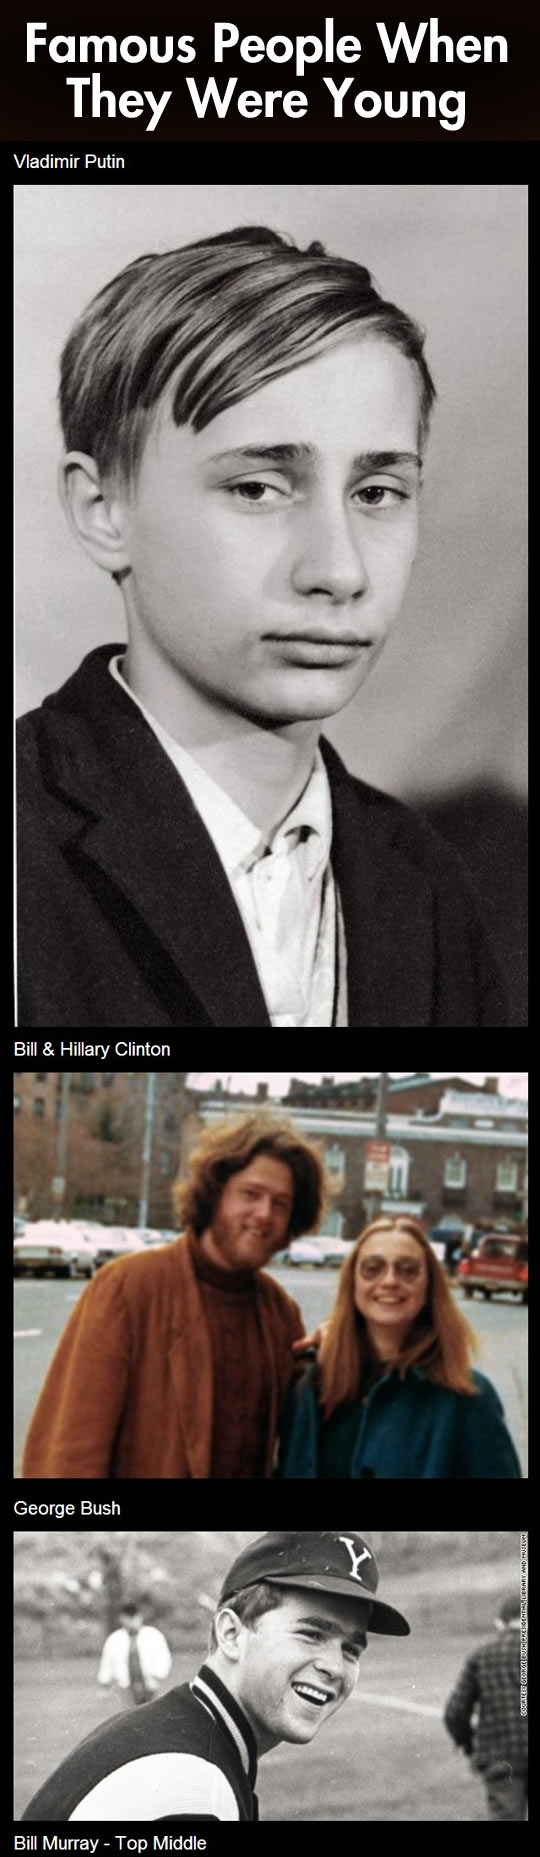 When famous people were young... width=